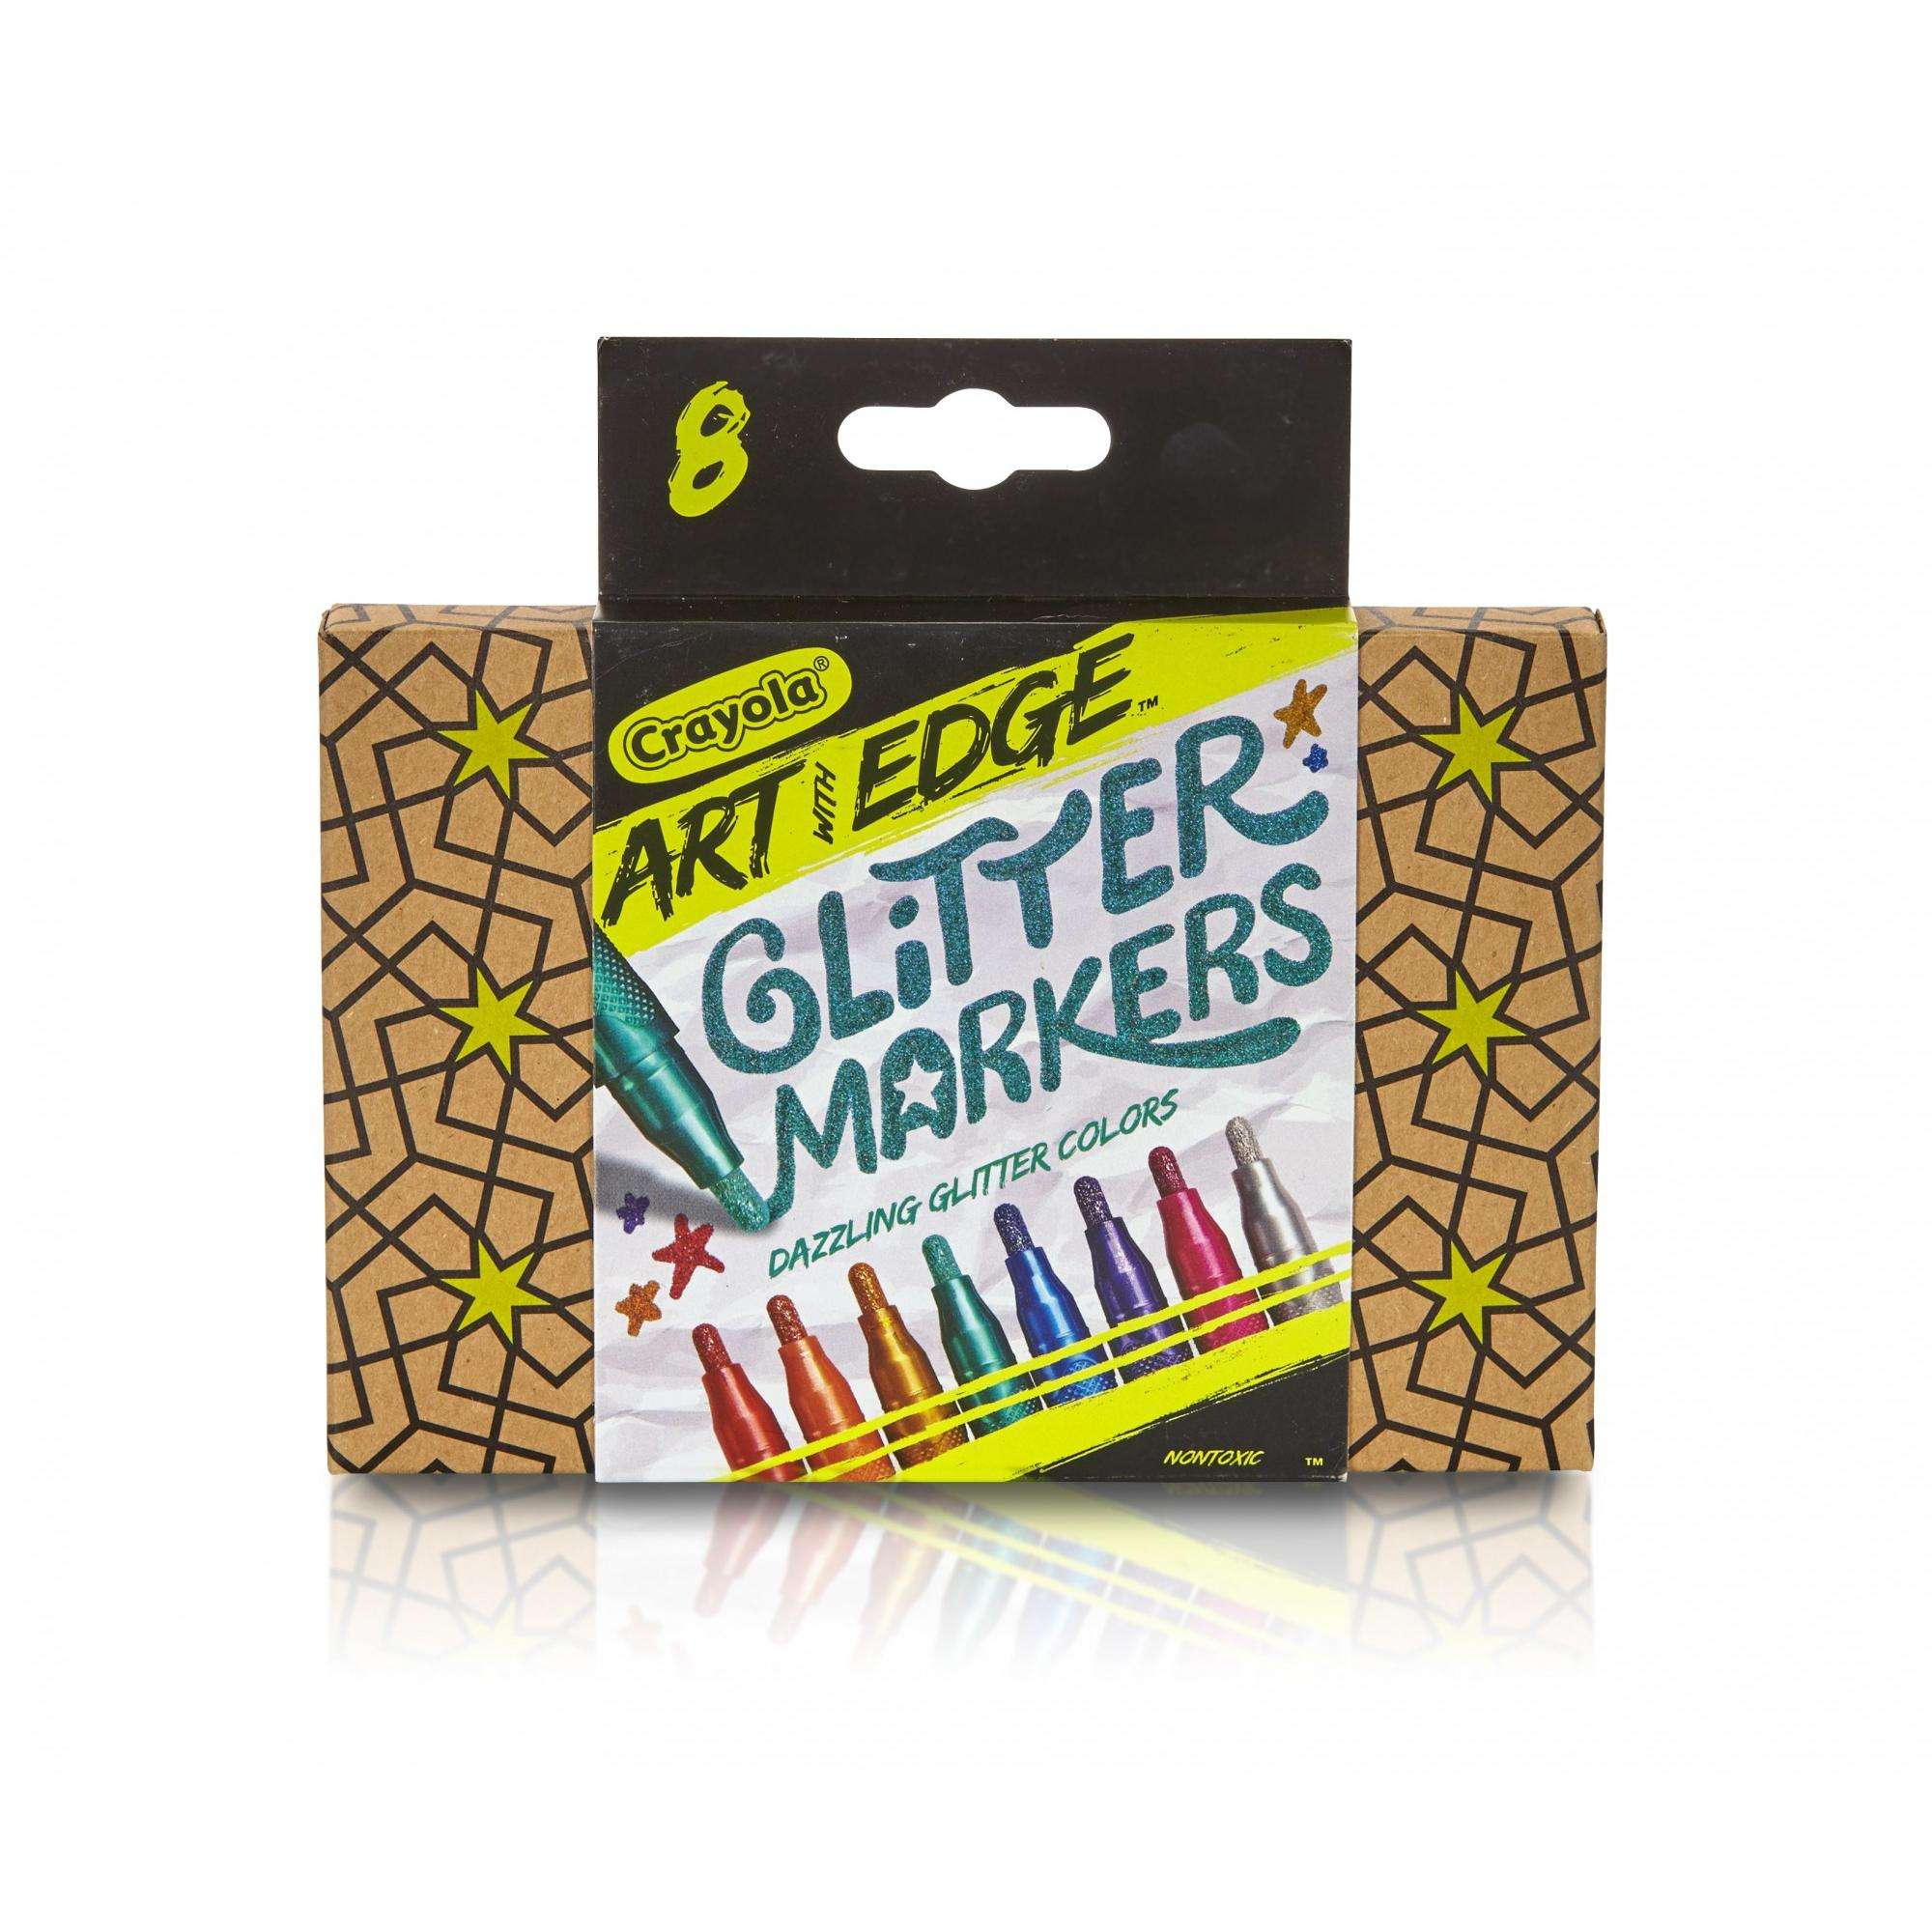 Crayola 8 Count Art with Edge Glitter Markers, Aged Up Coloring